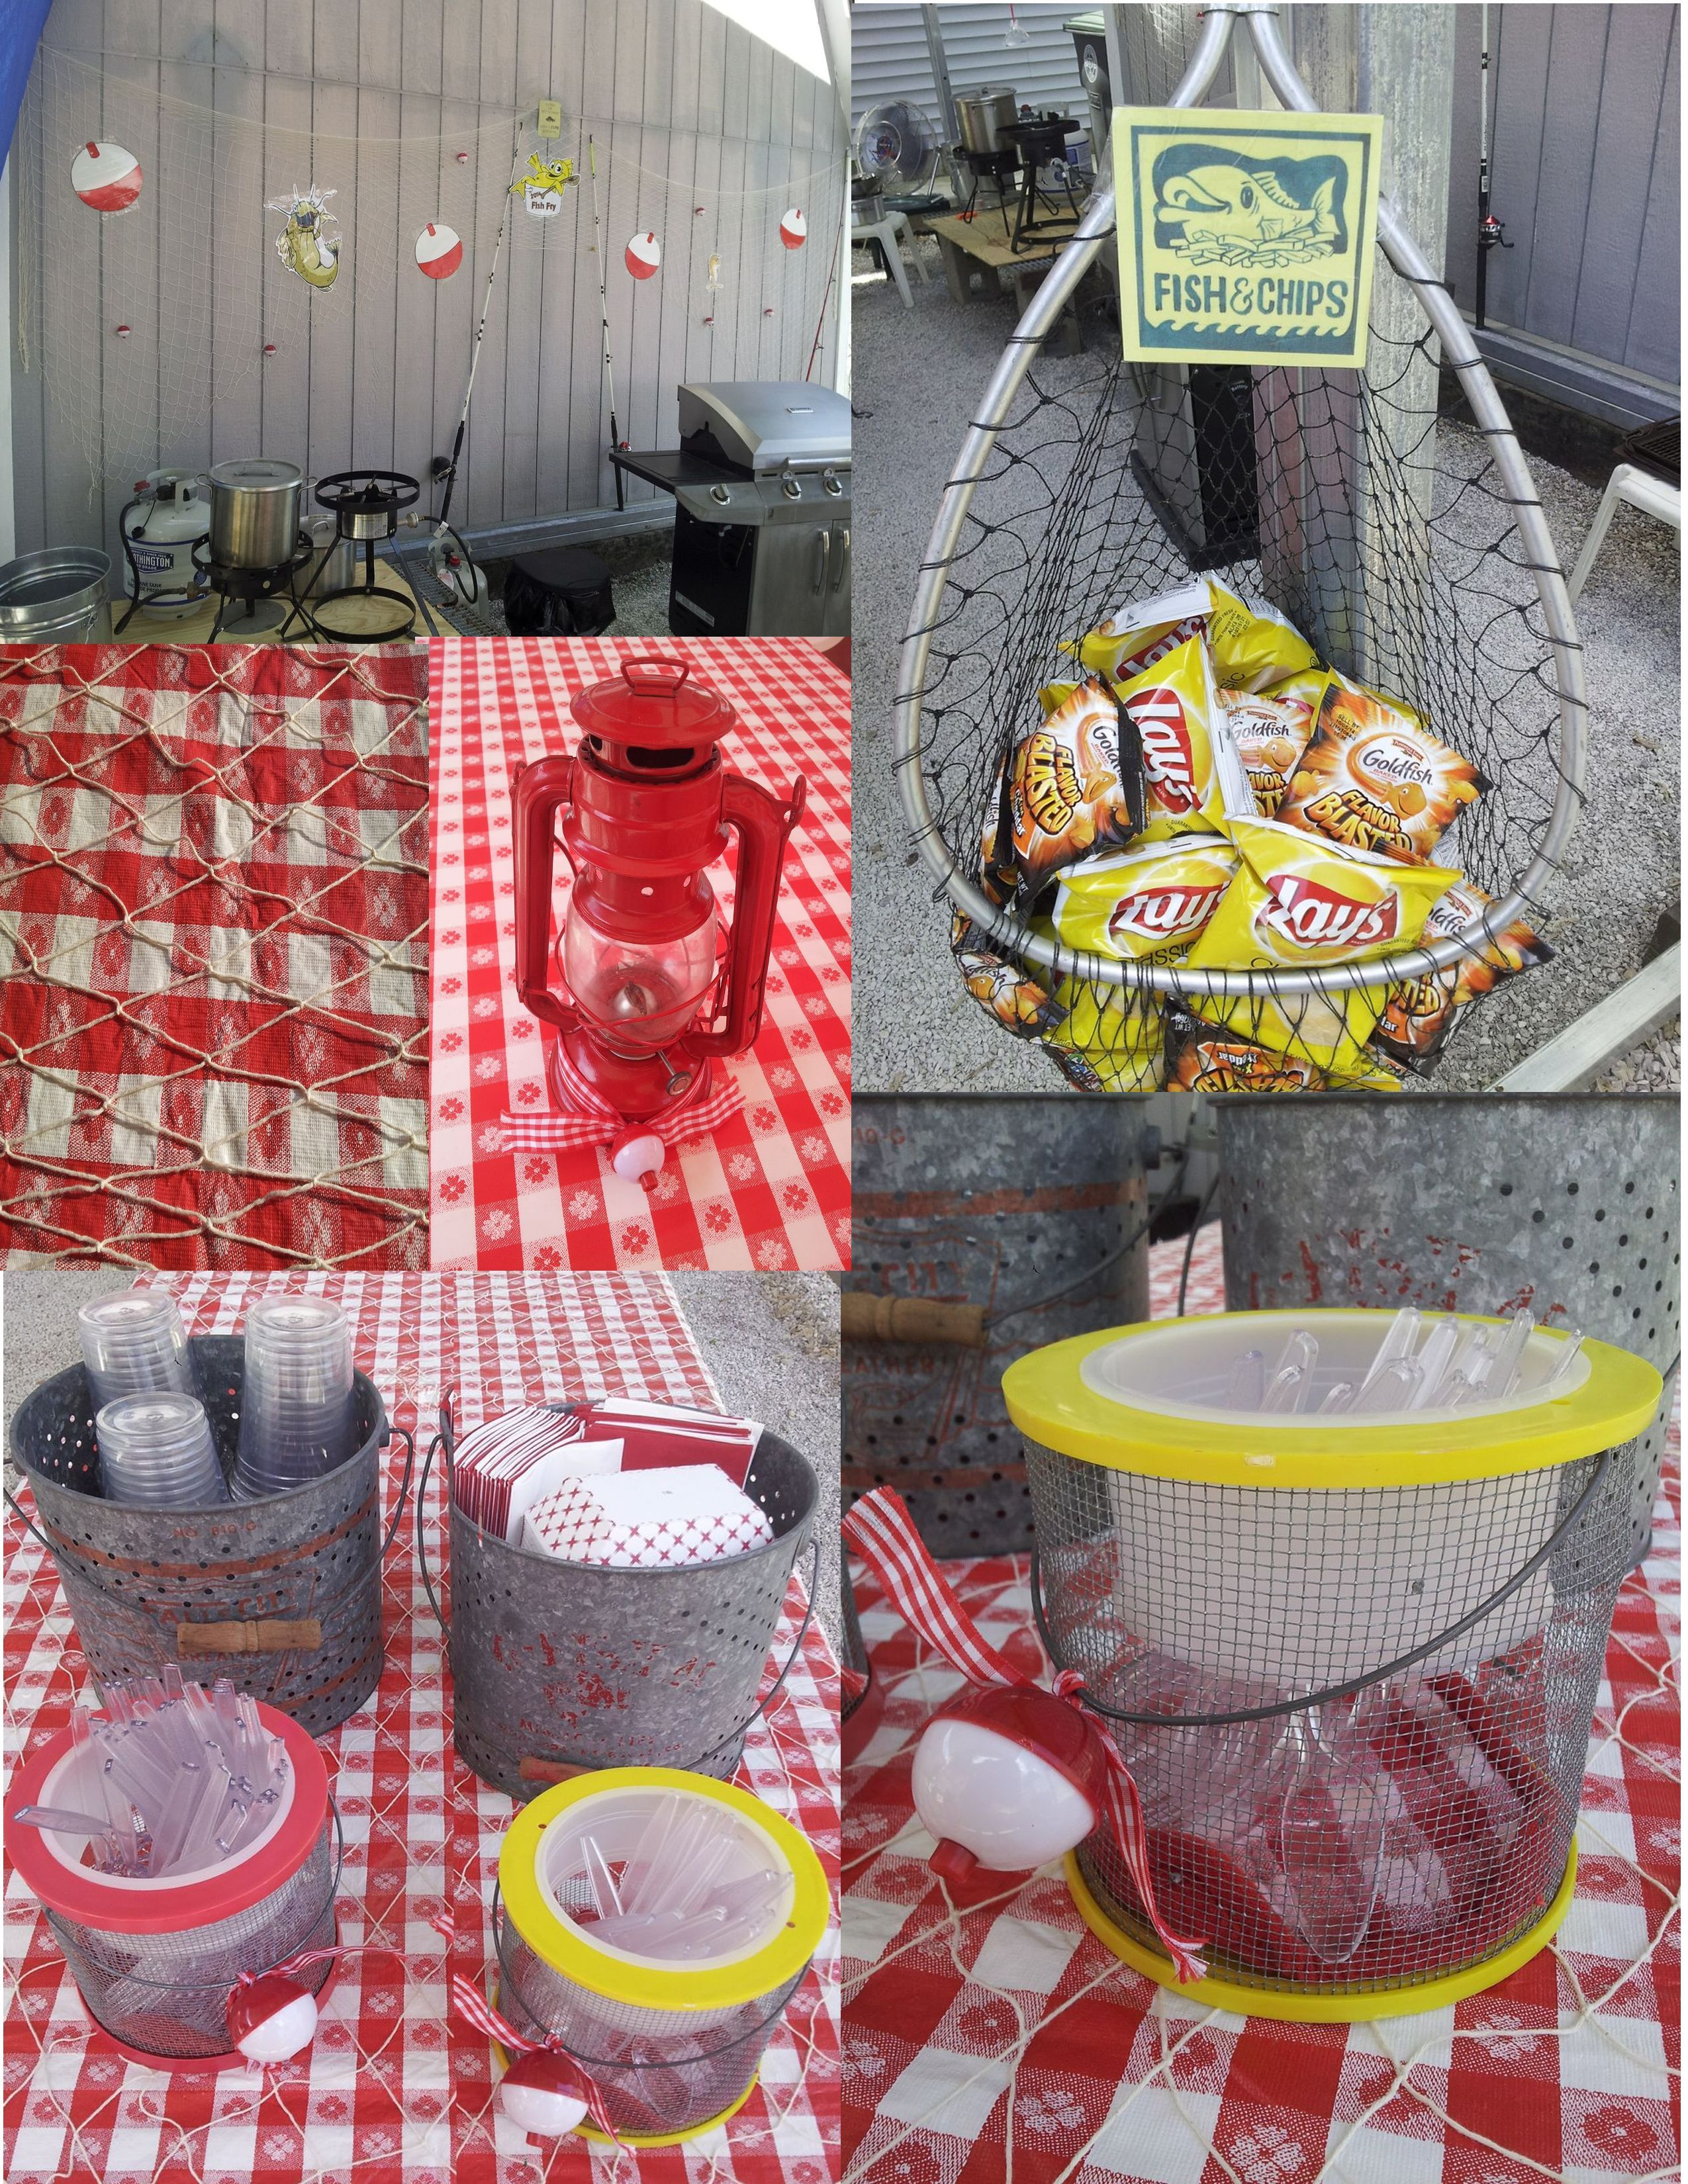 Hereu0027s My Fish Fry Decoration Ideas. Antique Minnow Buckets For Cups,  Napkins And Small